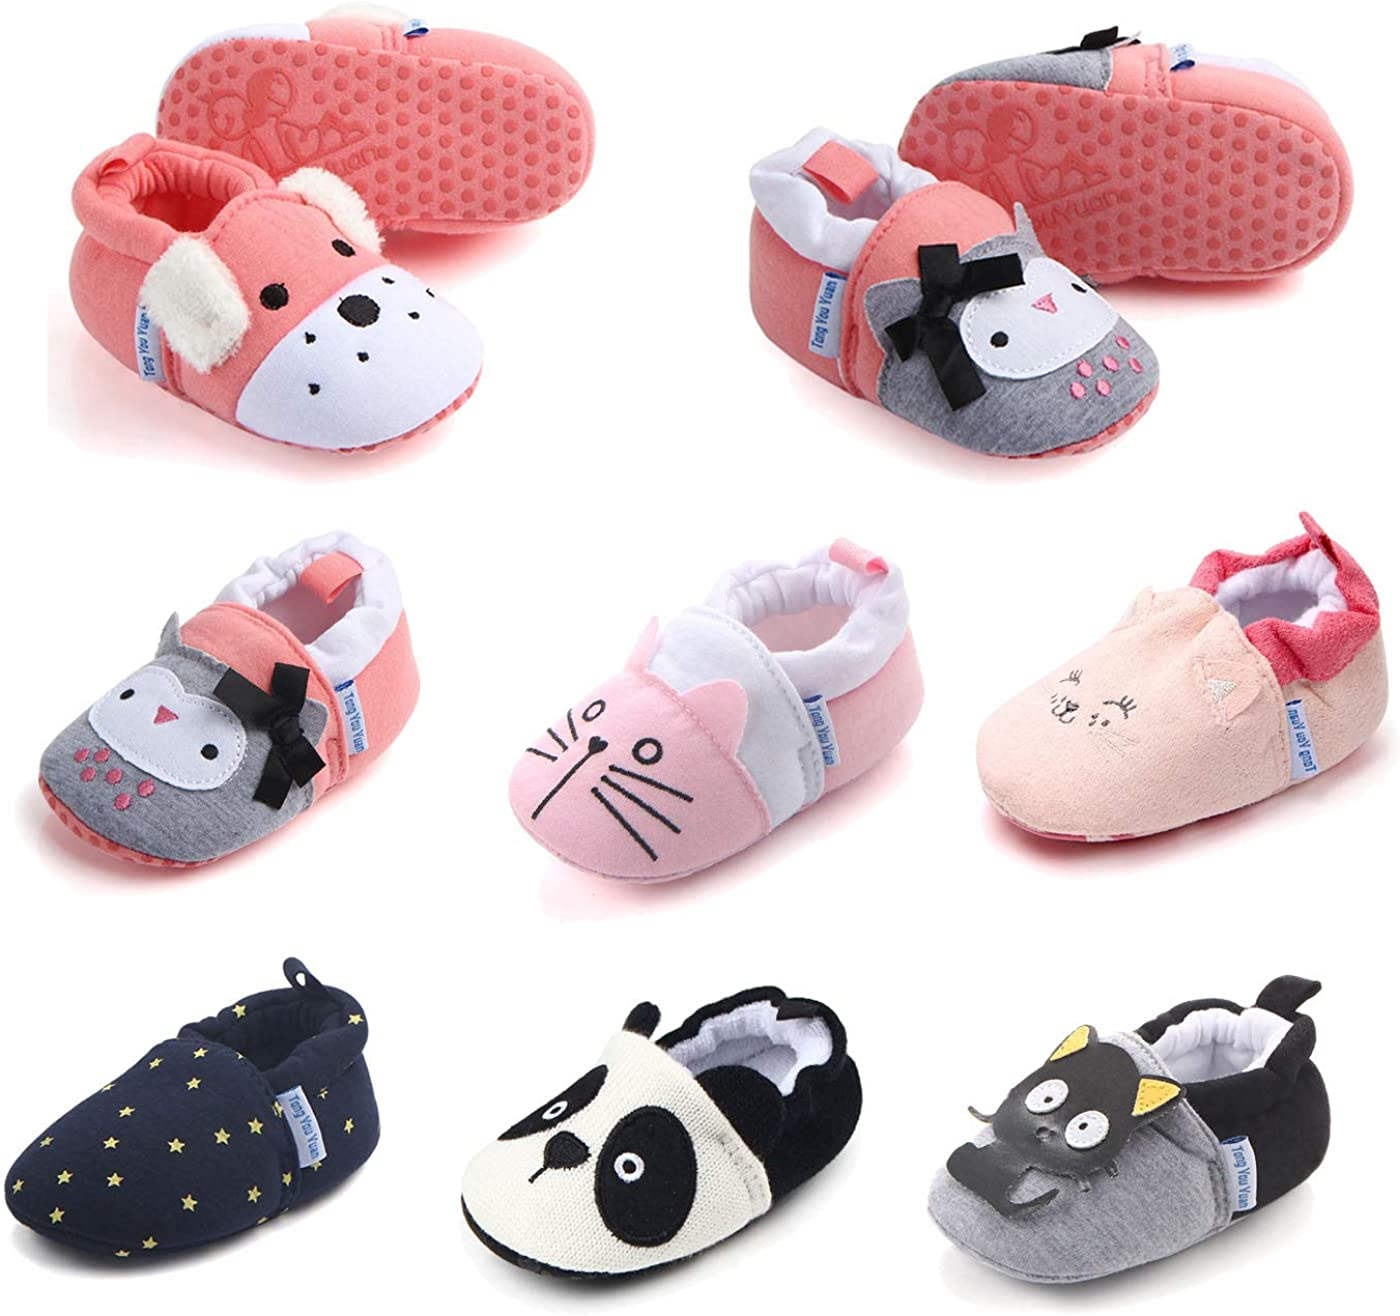 RATIVE Cotton Booties with Grippers for Baby Infant Toddler Boys Girls